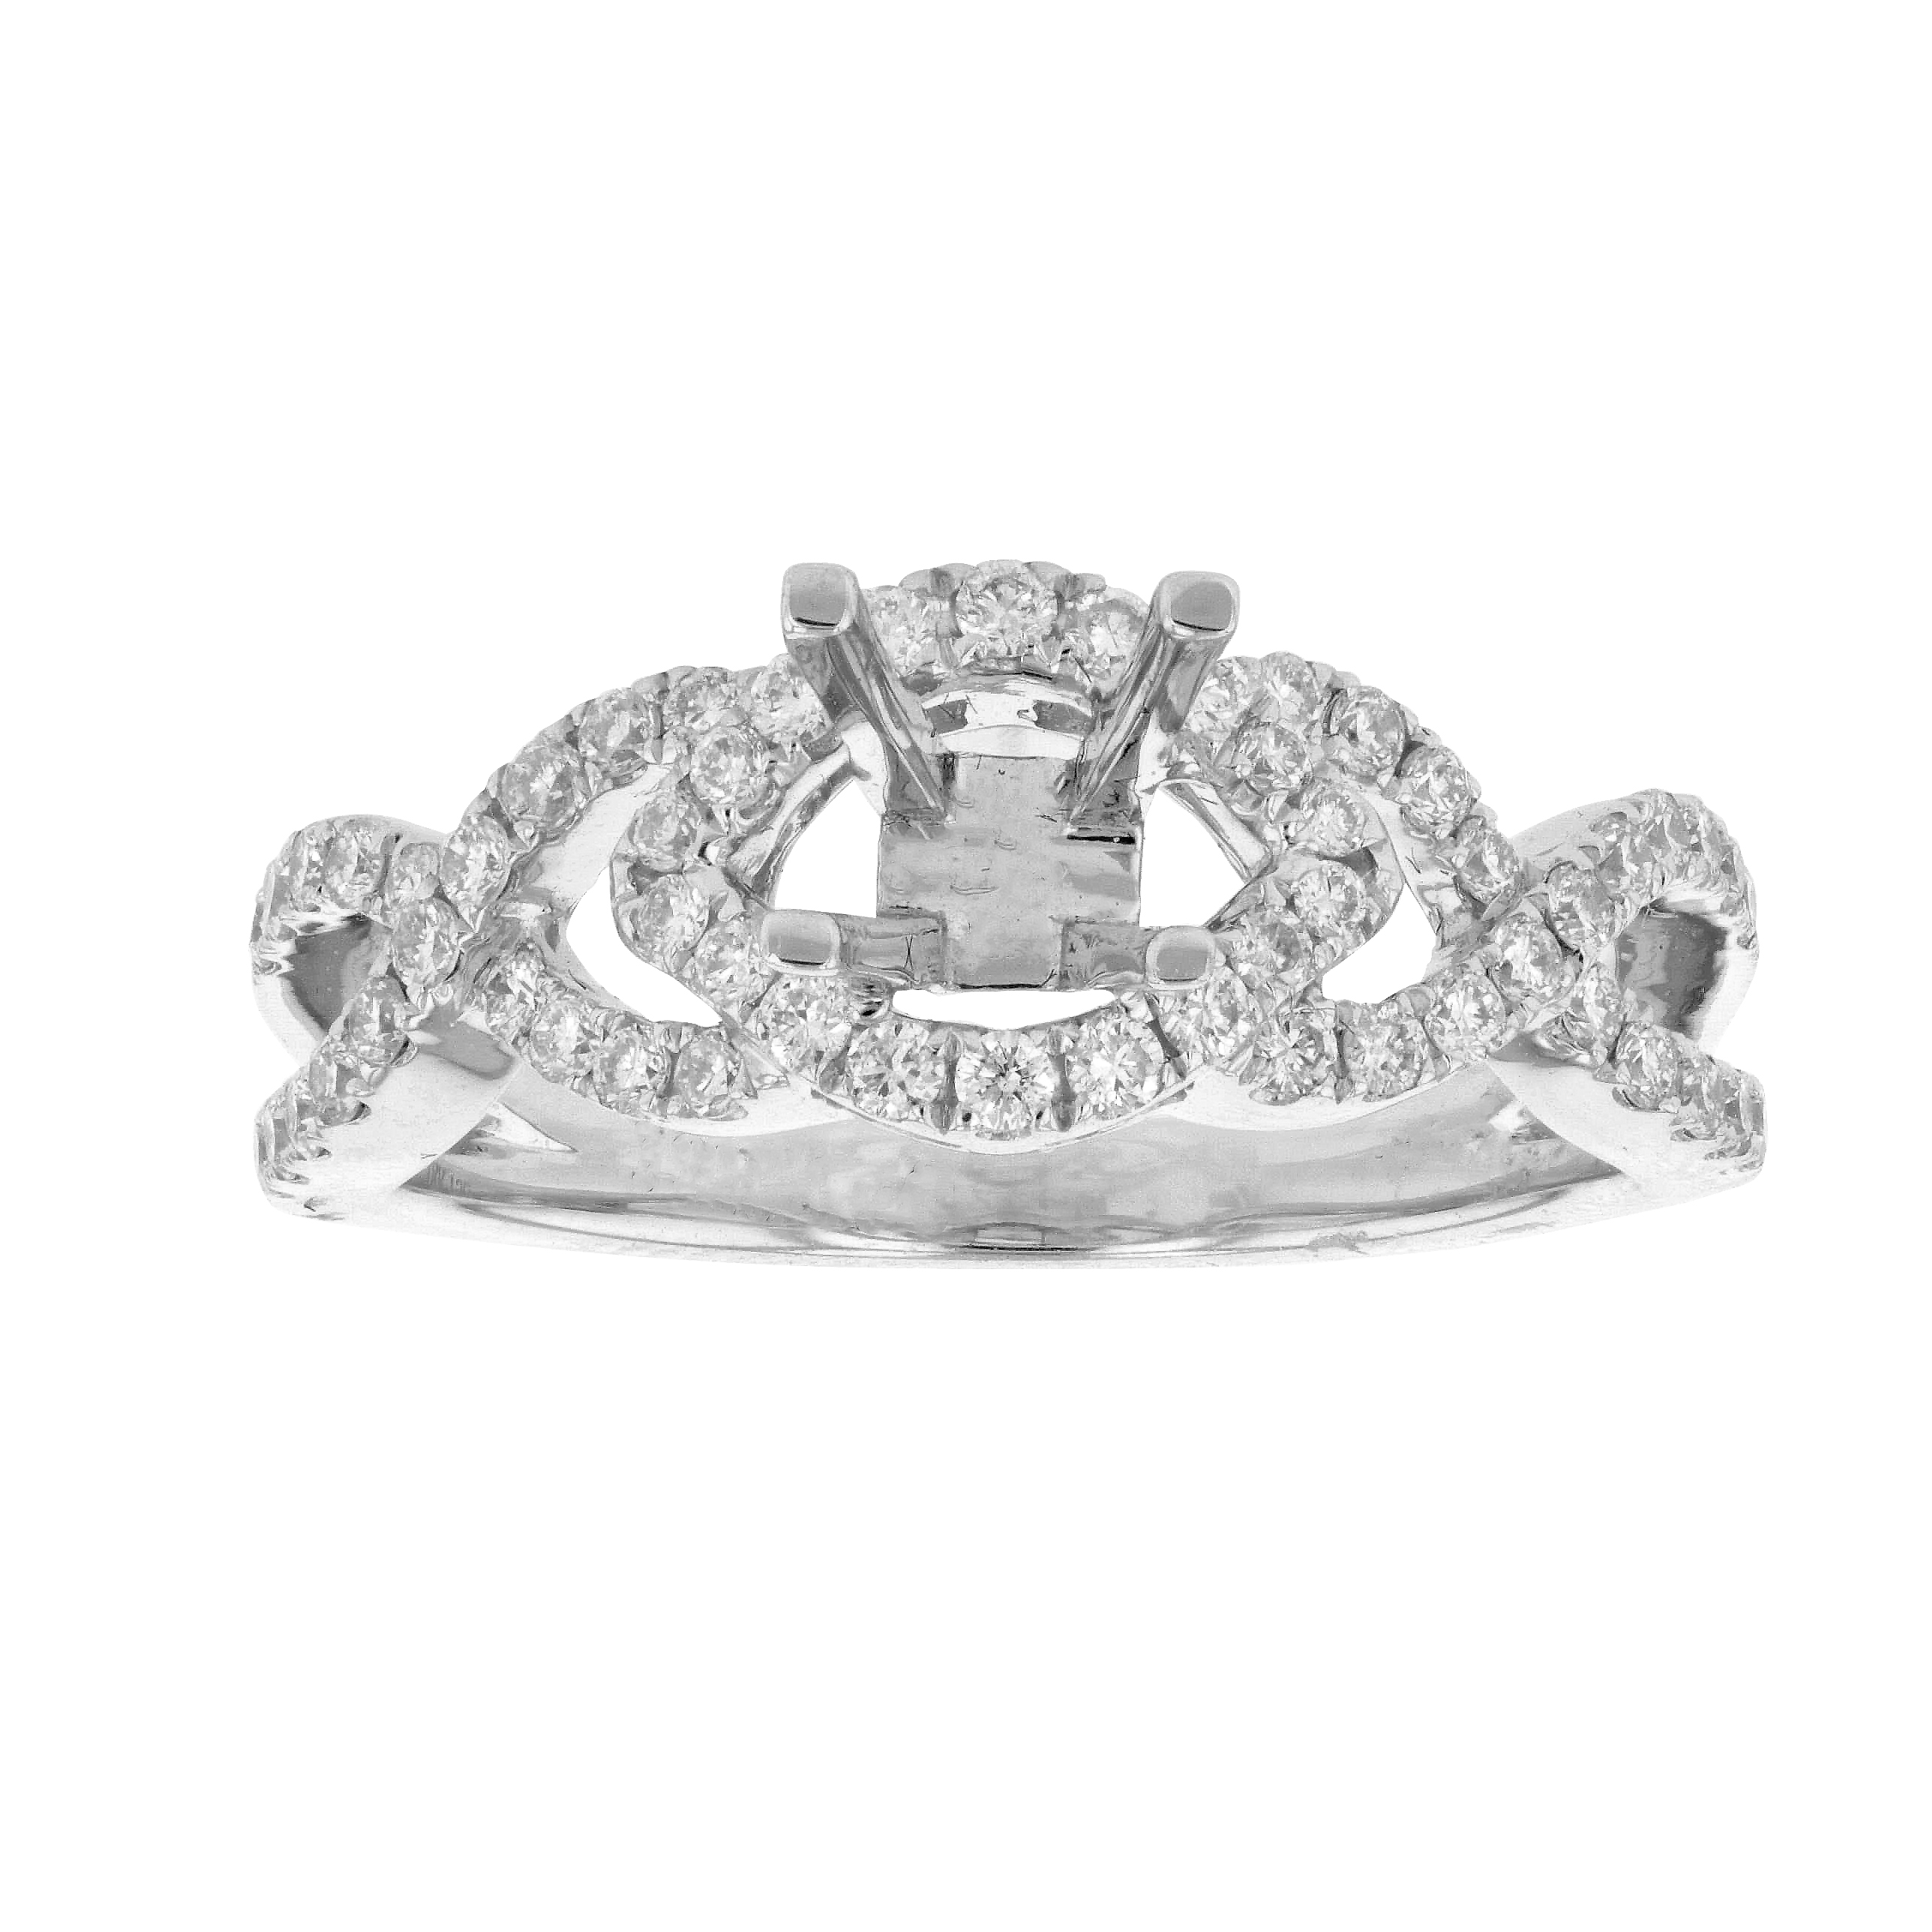 View 0.44ctw Diamond Semi Mount Engagement Ring in 18k White Gold